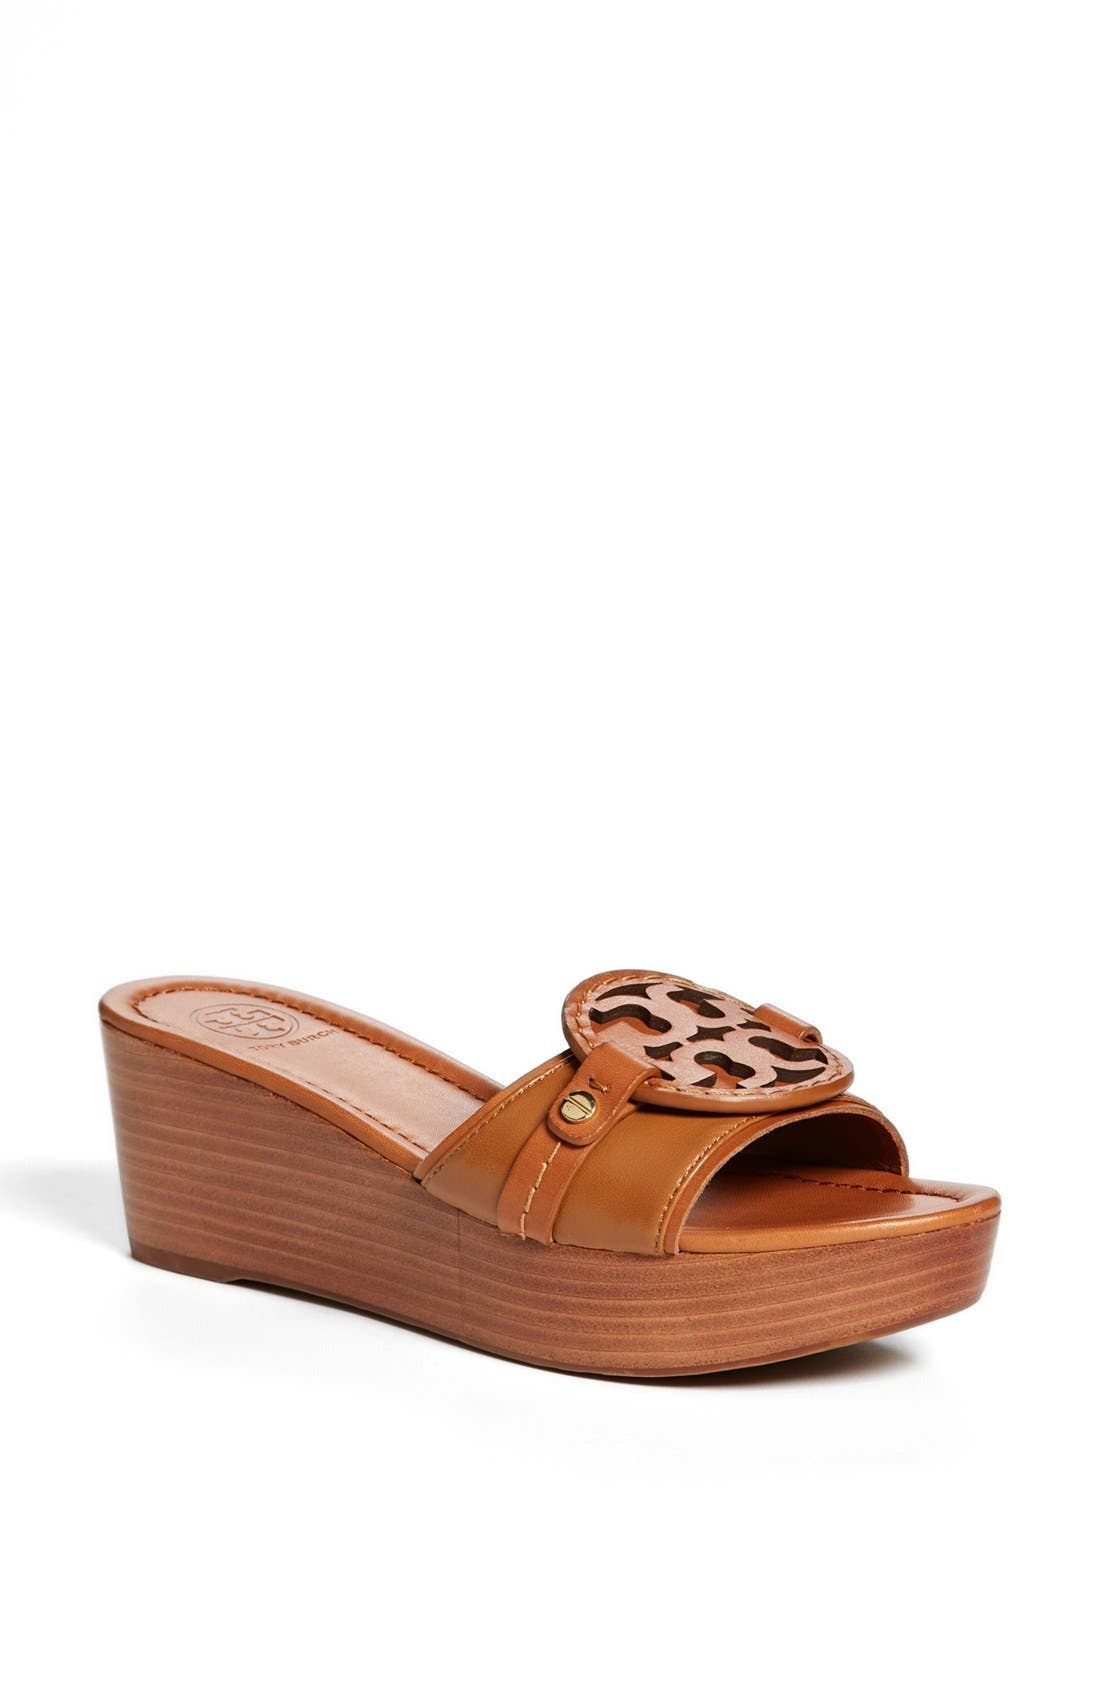 Alternate Image 1 Selected - Tory Burch 'Madalena' Platform Slide Sandal (Online Only)